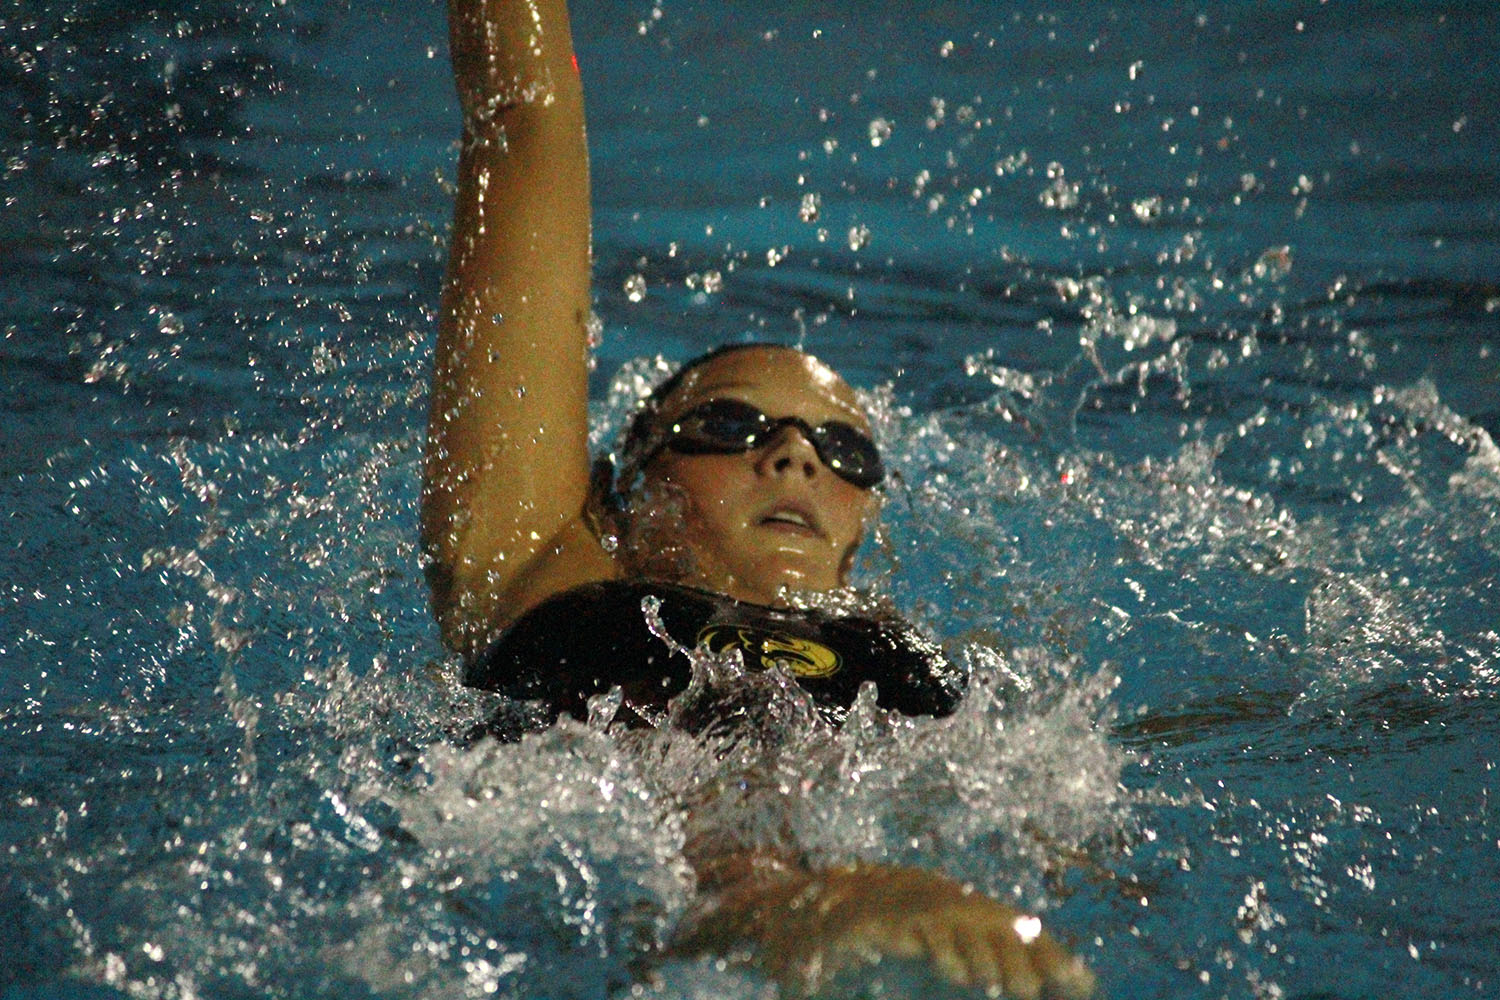 +Swimming+backstroke%2C+junior+Bruna+Custodio+races+to+the+end+of+the+pool+September+5+at+Bobby+Hicks+pool.+The+Plant+swim+team+defeated+Sickles+High+school+at+their+second+swim+meet+of+the+year.+